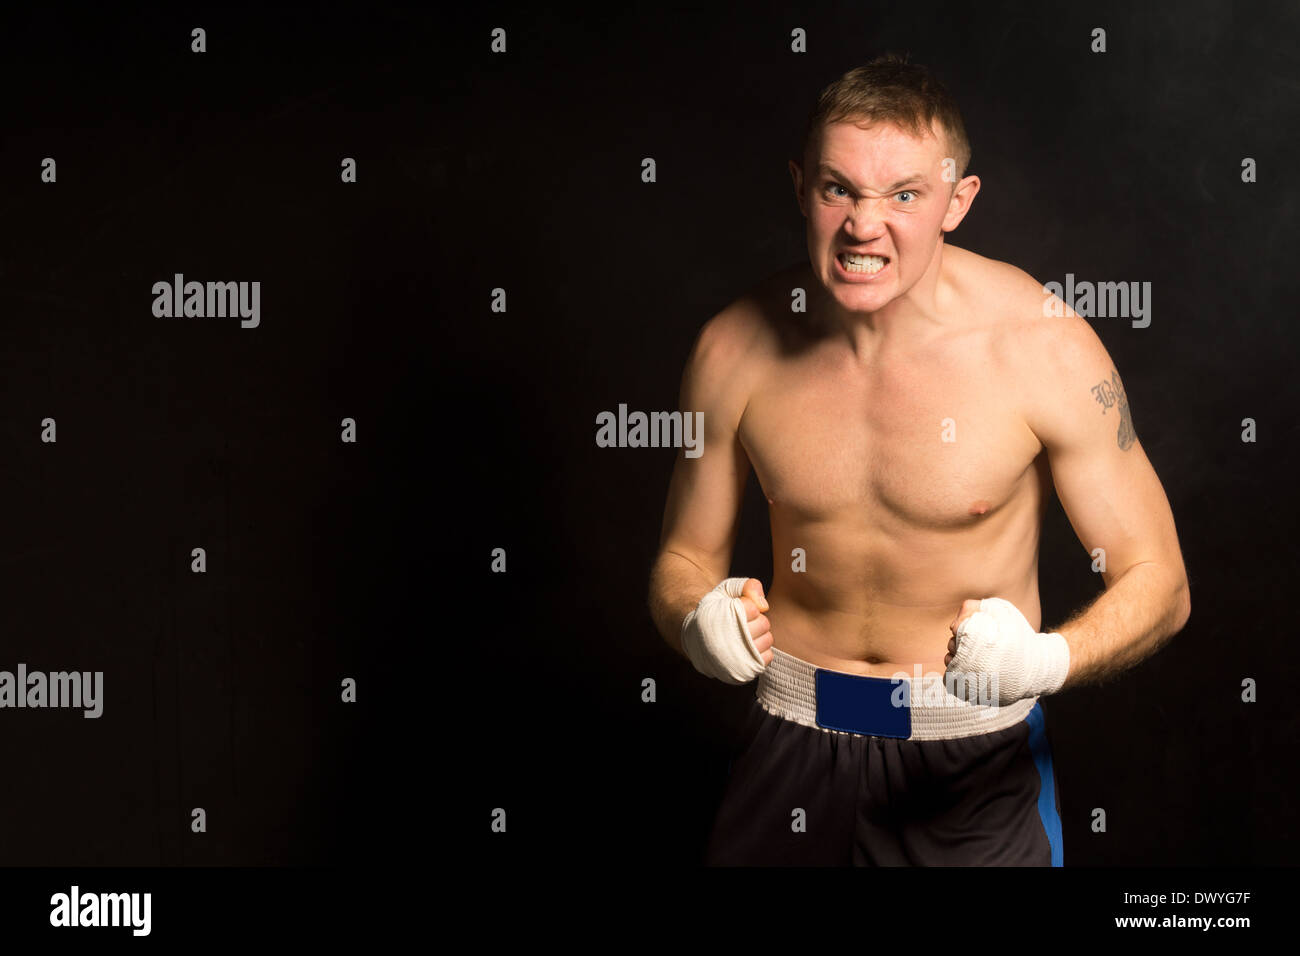 Angry determined young boxer gritting his teeth with clenched bandaged fists on a dark background with copyspace - Stock Image